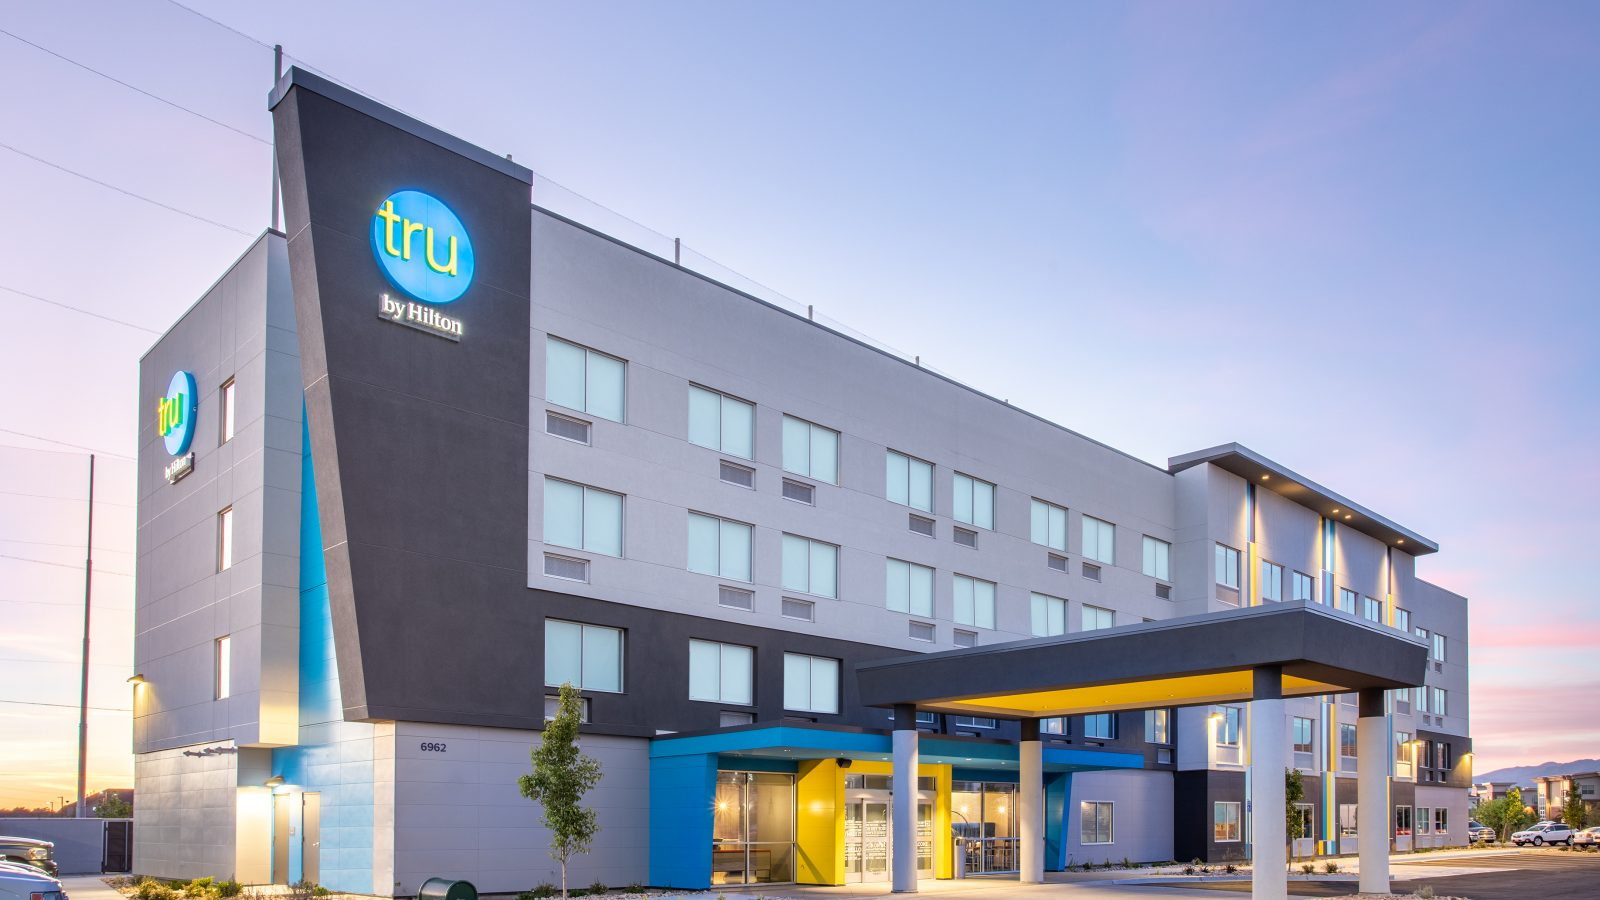 Tru by Hilton Salt Lake City Midvale Exterior Dusk